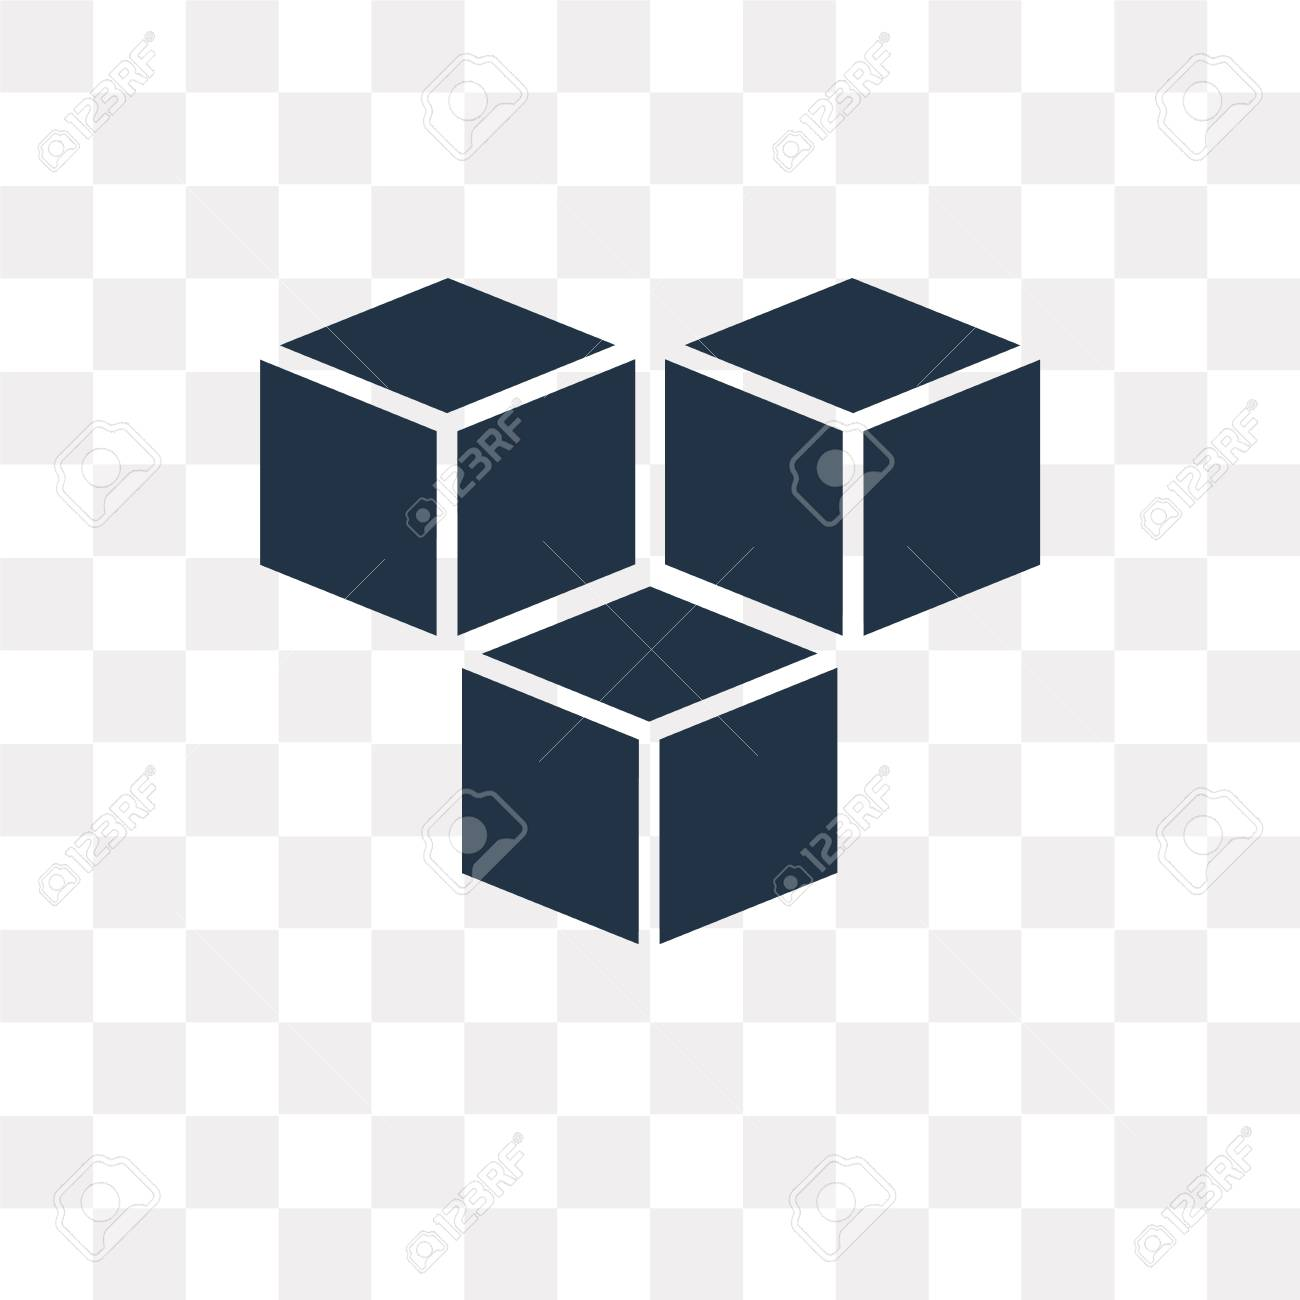 Cube vector icon isolated on transparent background, Cube transparency